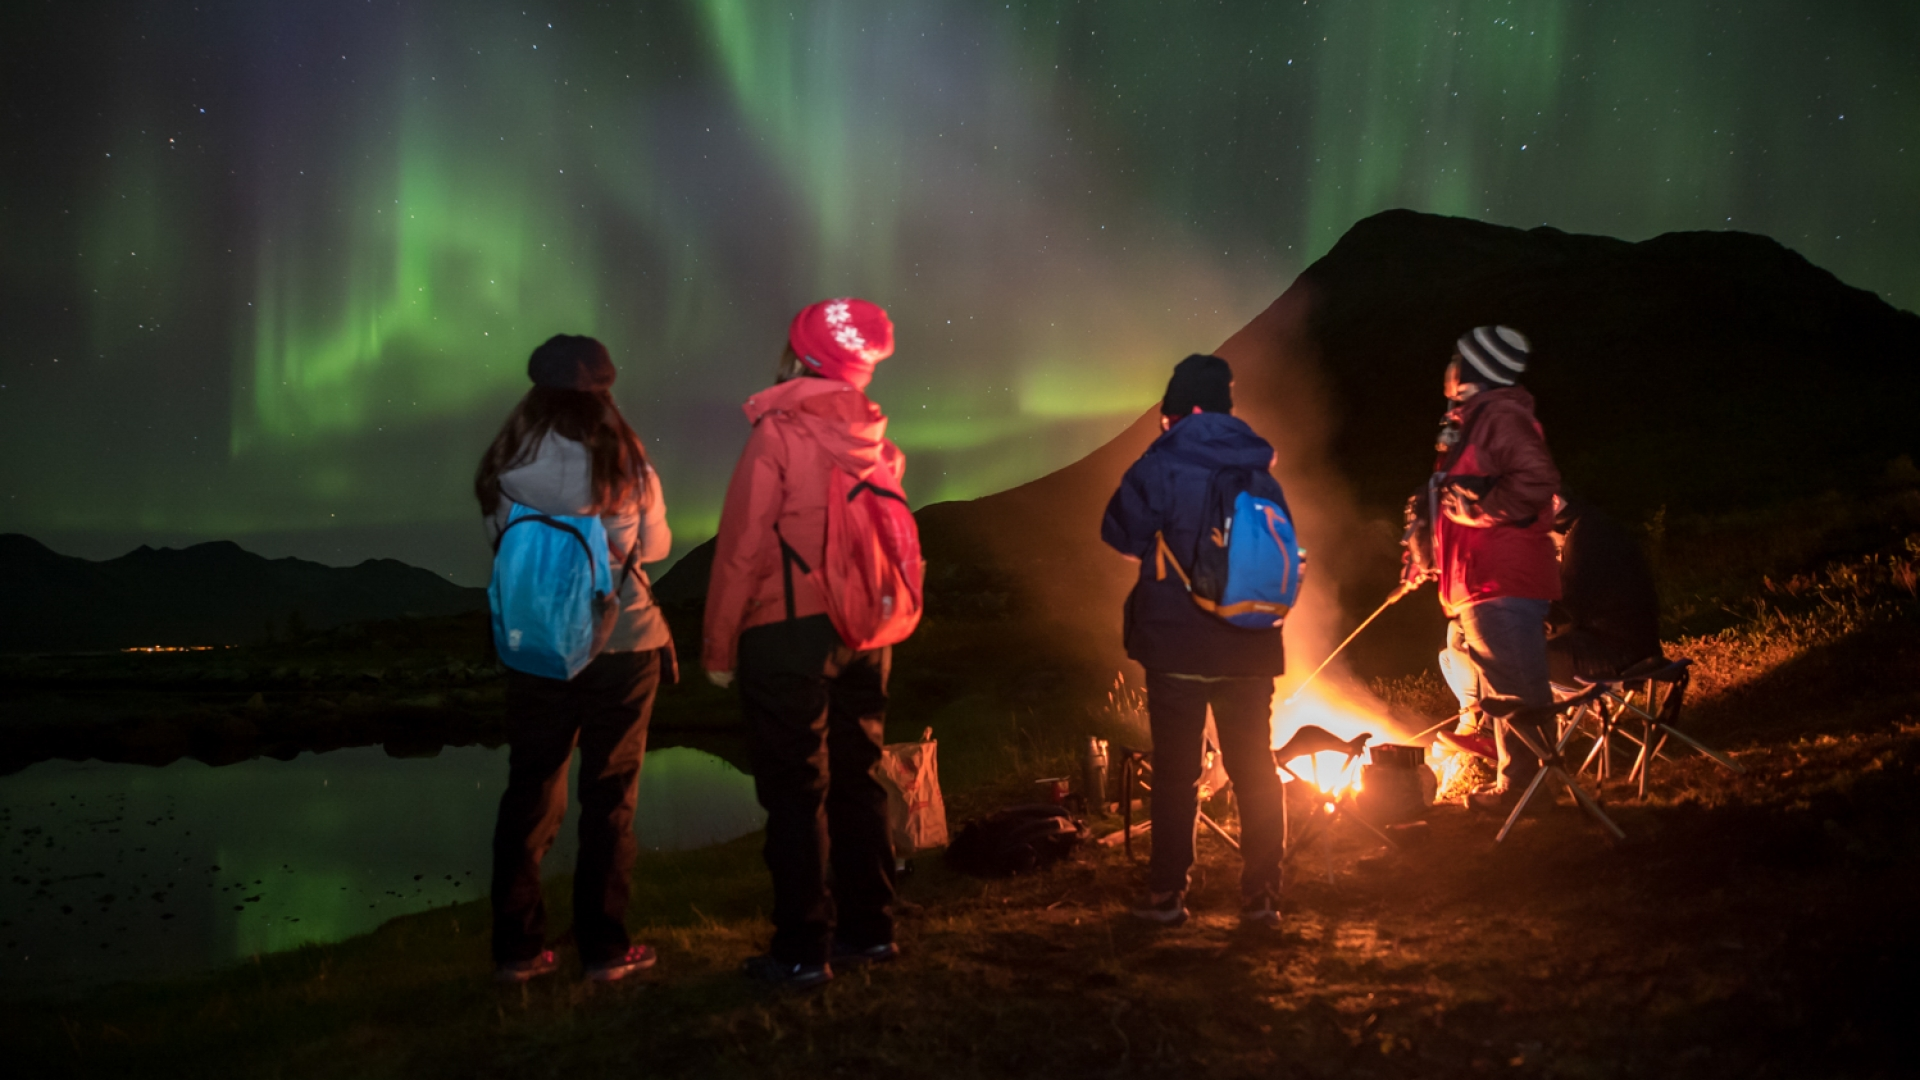 People standing by bonfire watching the Northern Lights